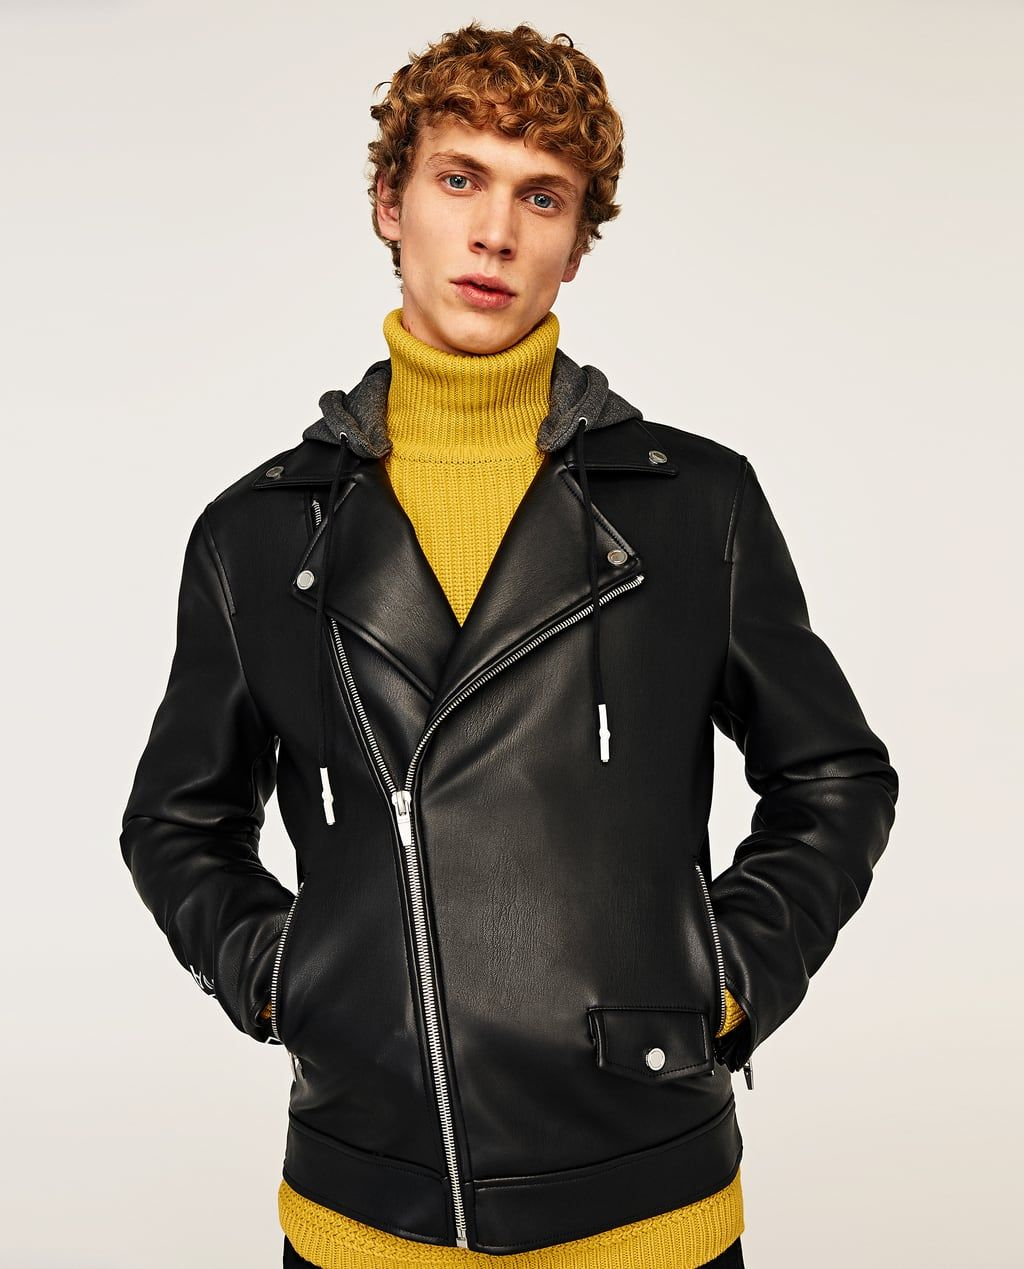 FAUX LEATHER JACKET WITH LETTERS Leather jacket, Faux